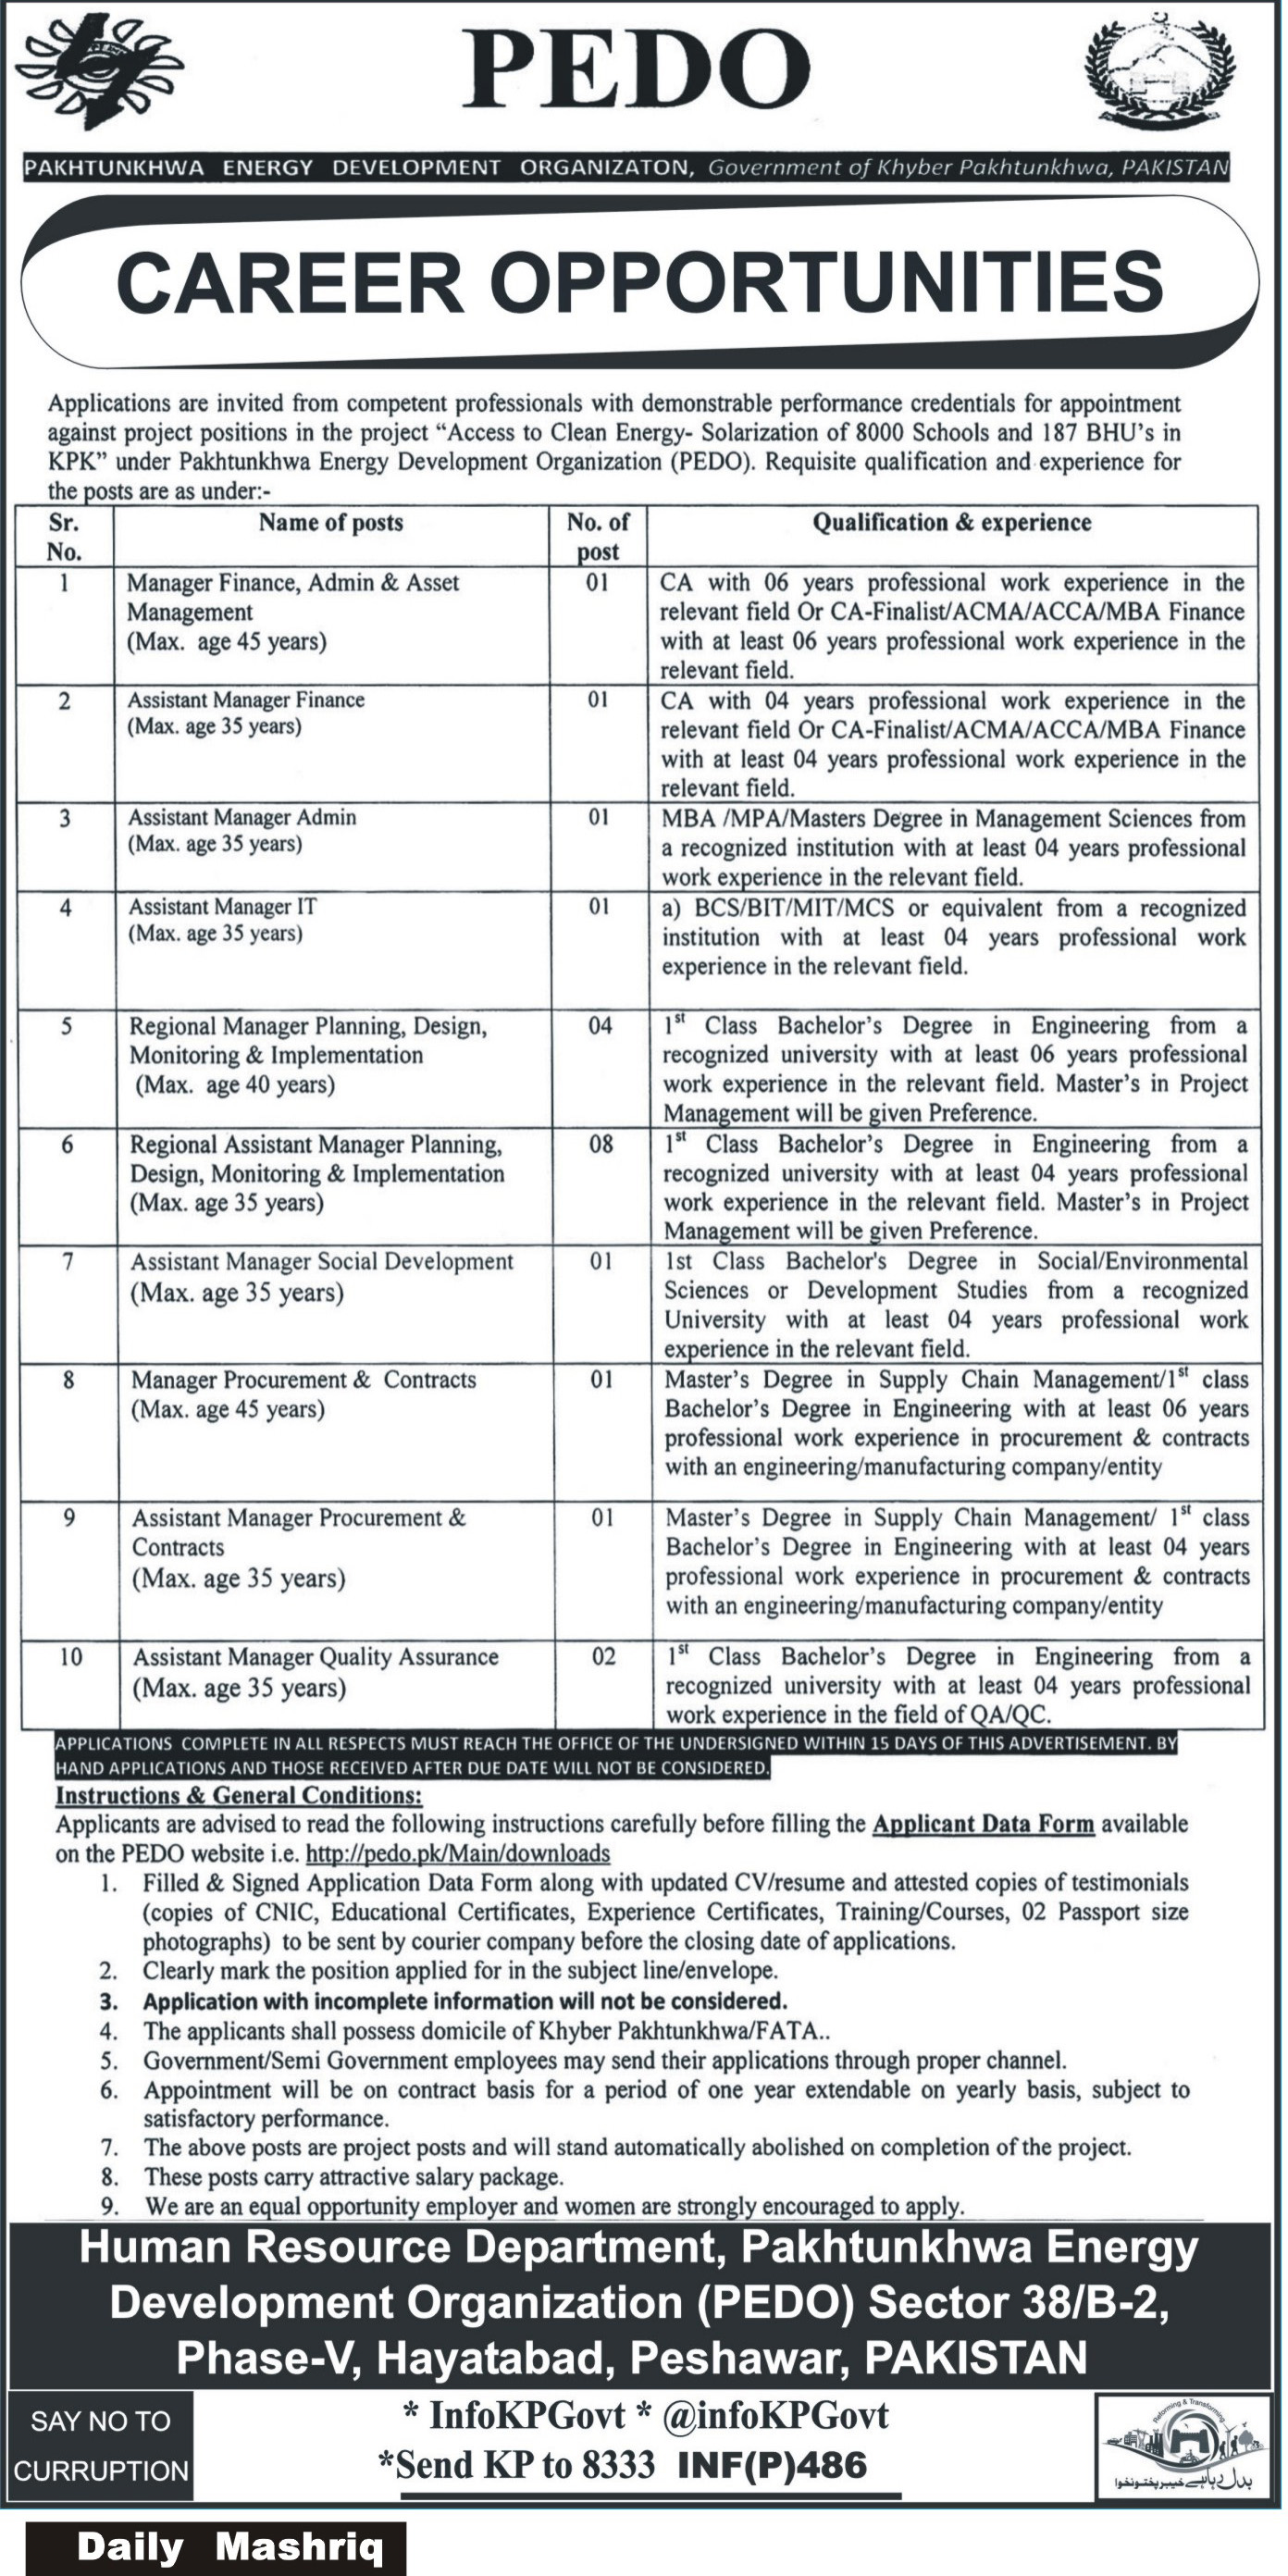 Peshawar Pekhtunkhwa Energy Development Organization 21 jobs, 27-01-2018, Daily mashriq Newspaper